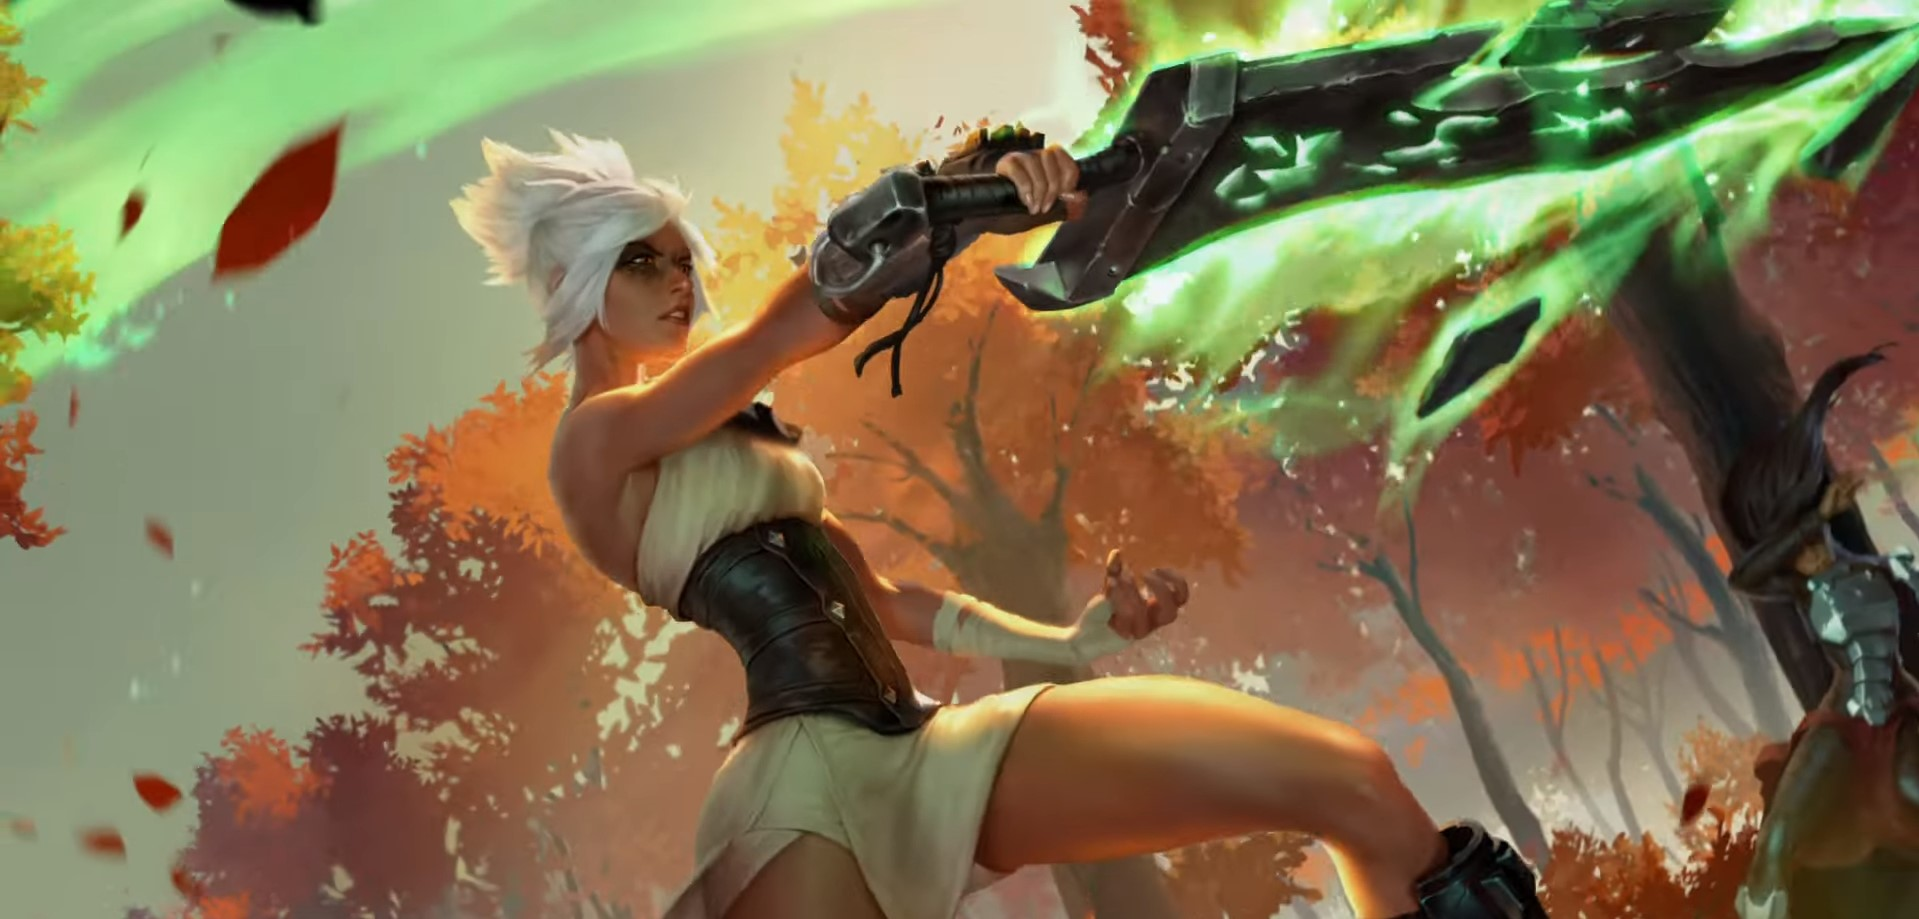 Cosmic Creation LoR Card Impressions: Riven (Sharpened Resolve, Survival Skills, and More)